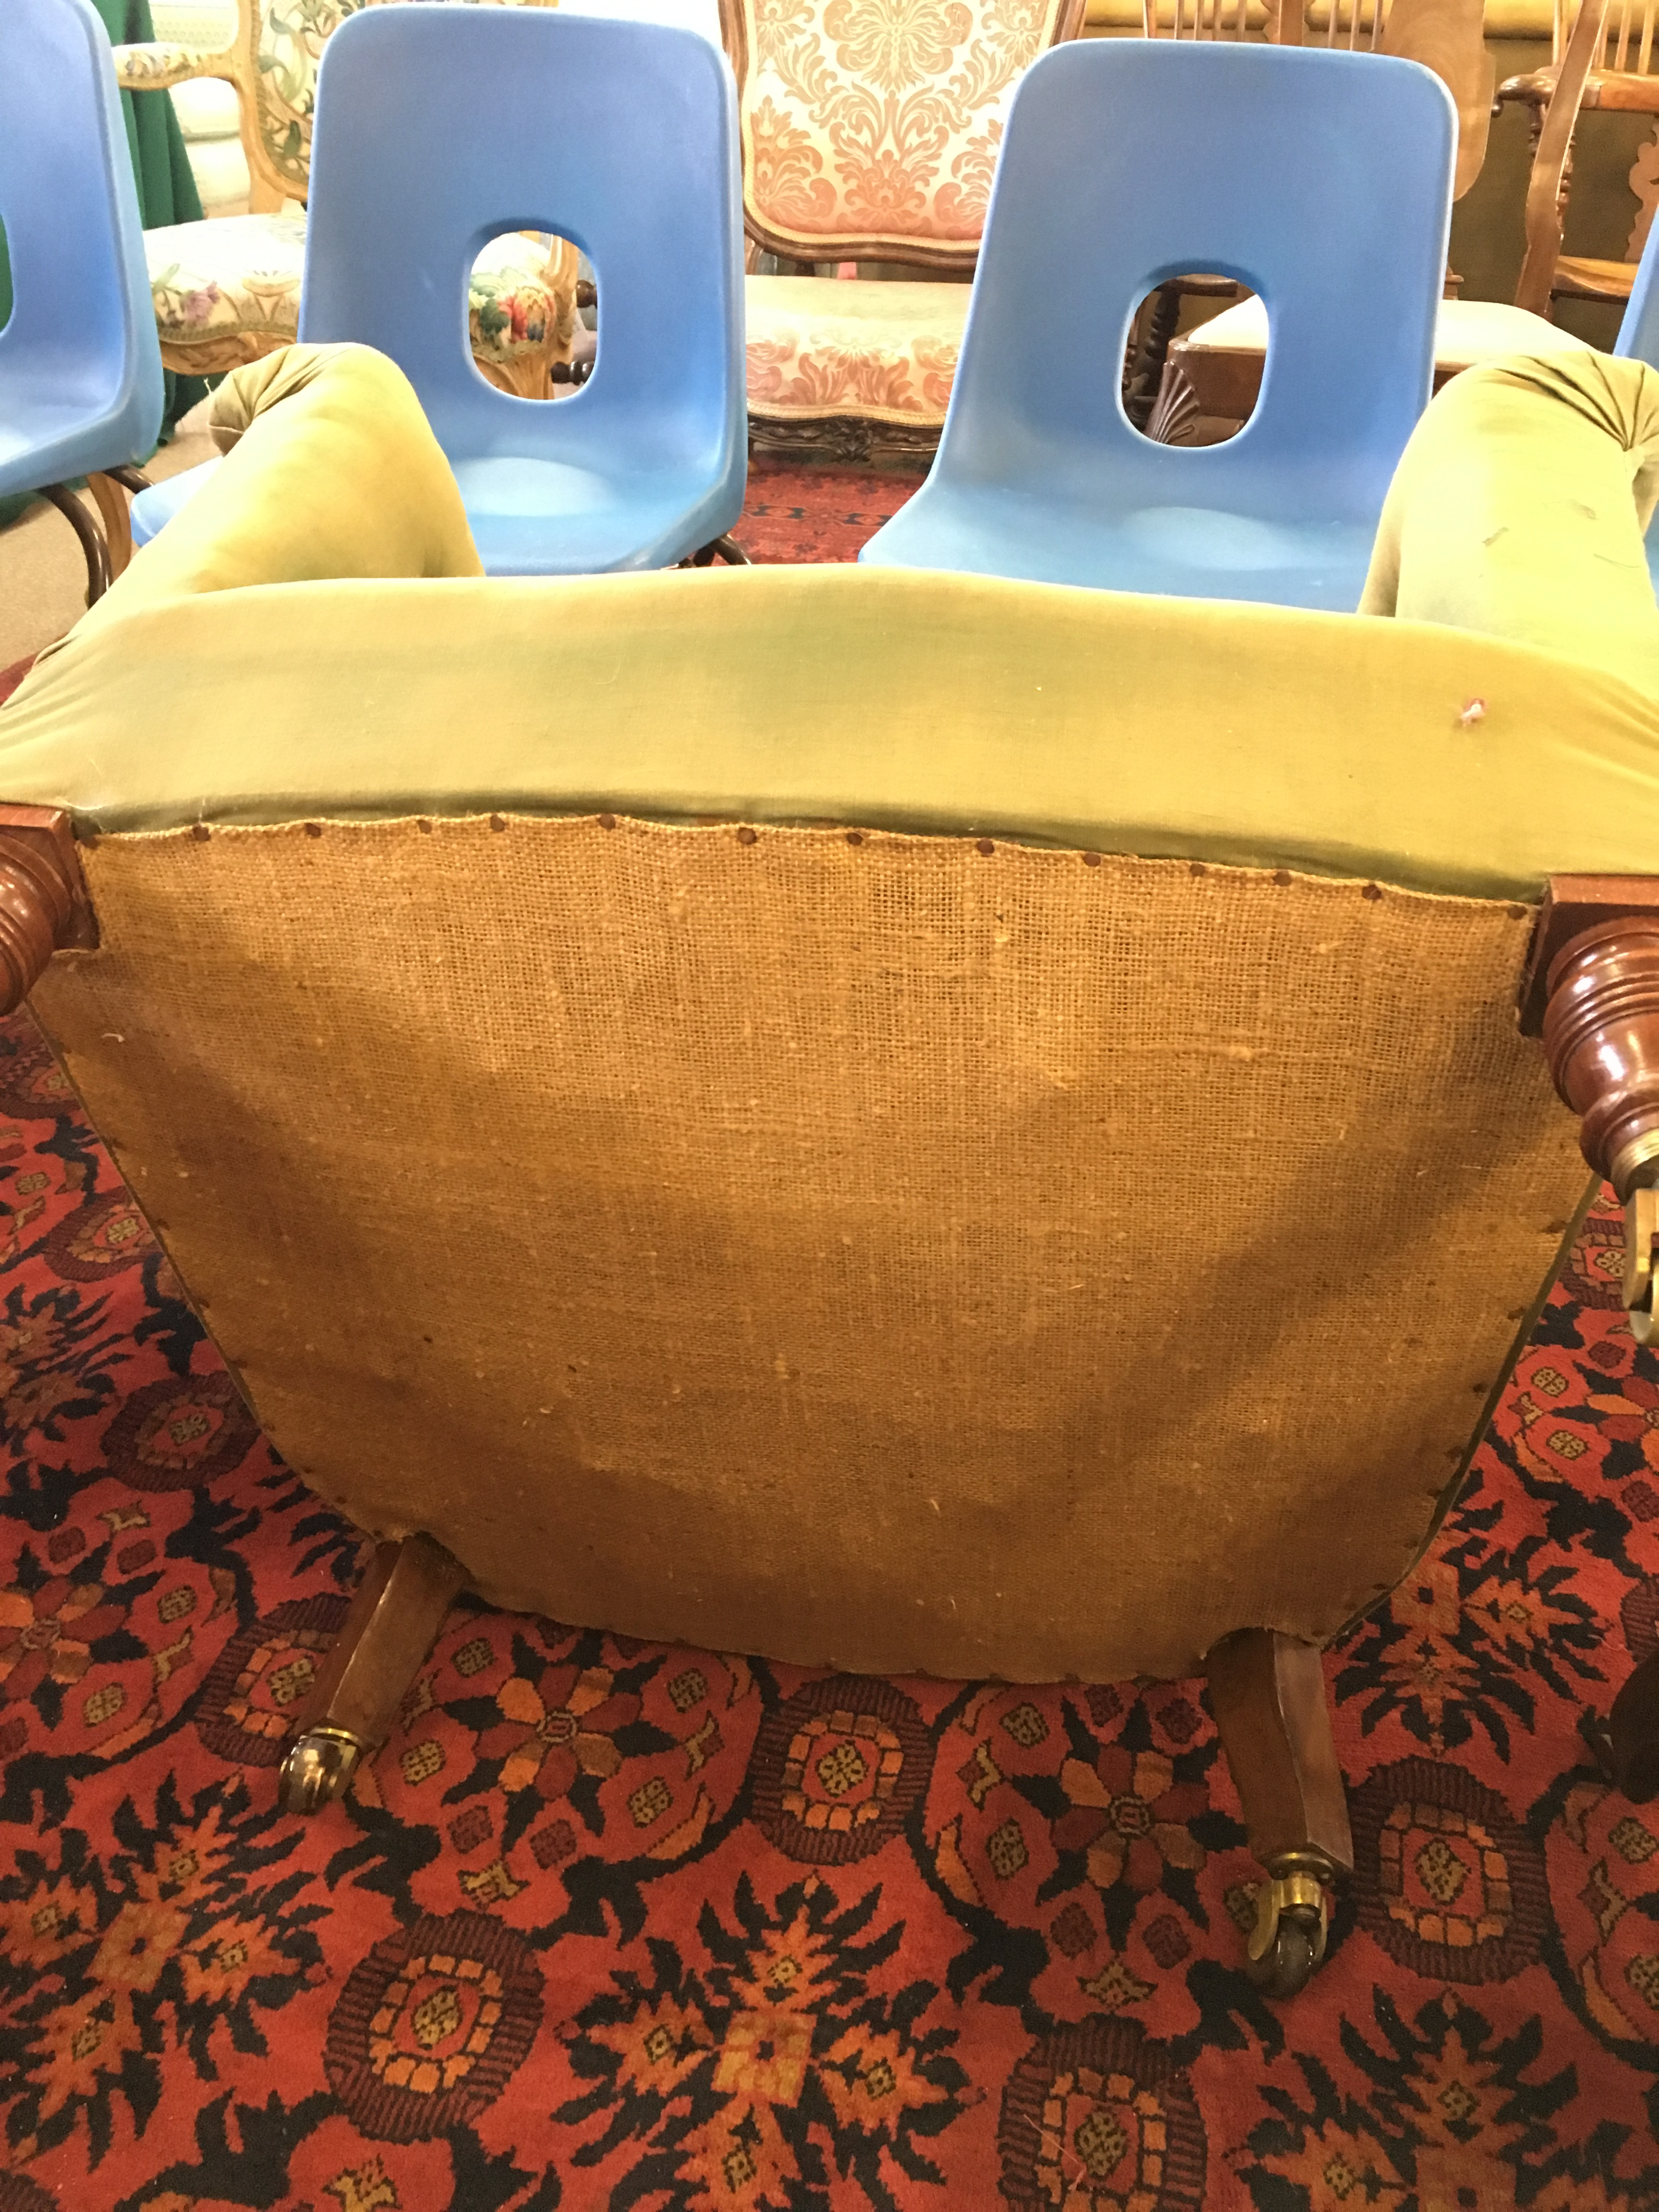 Lot 1792 - HOWARD & SONS TUB CHAIR, with curved back and slightly outswept arms, a rear leg stamped 10383 3795,